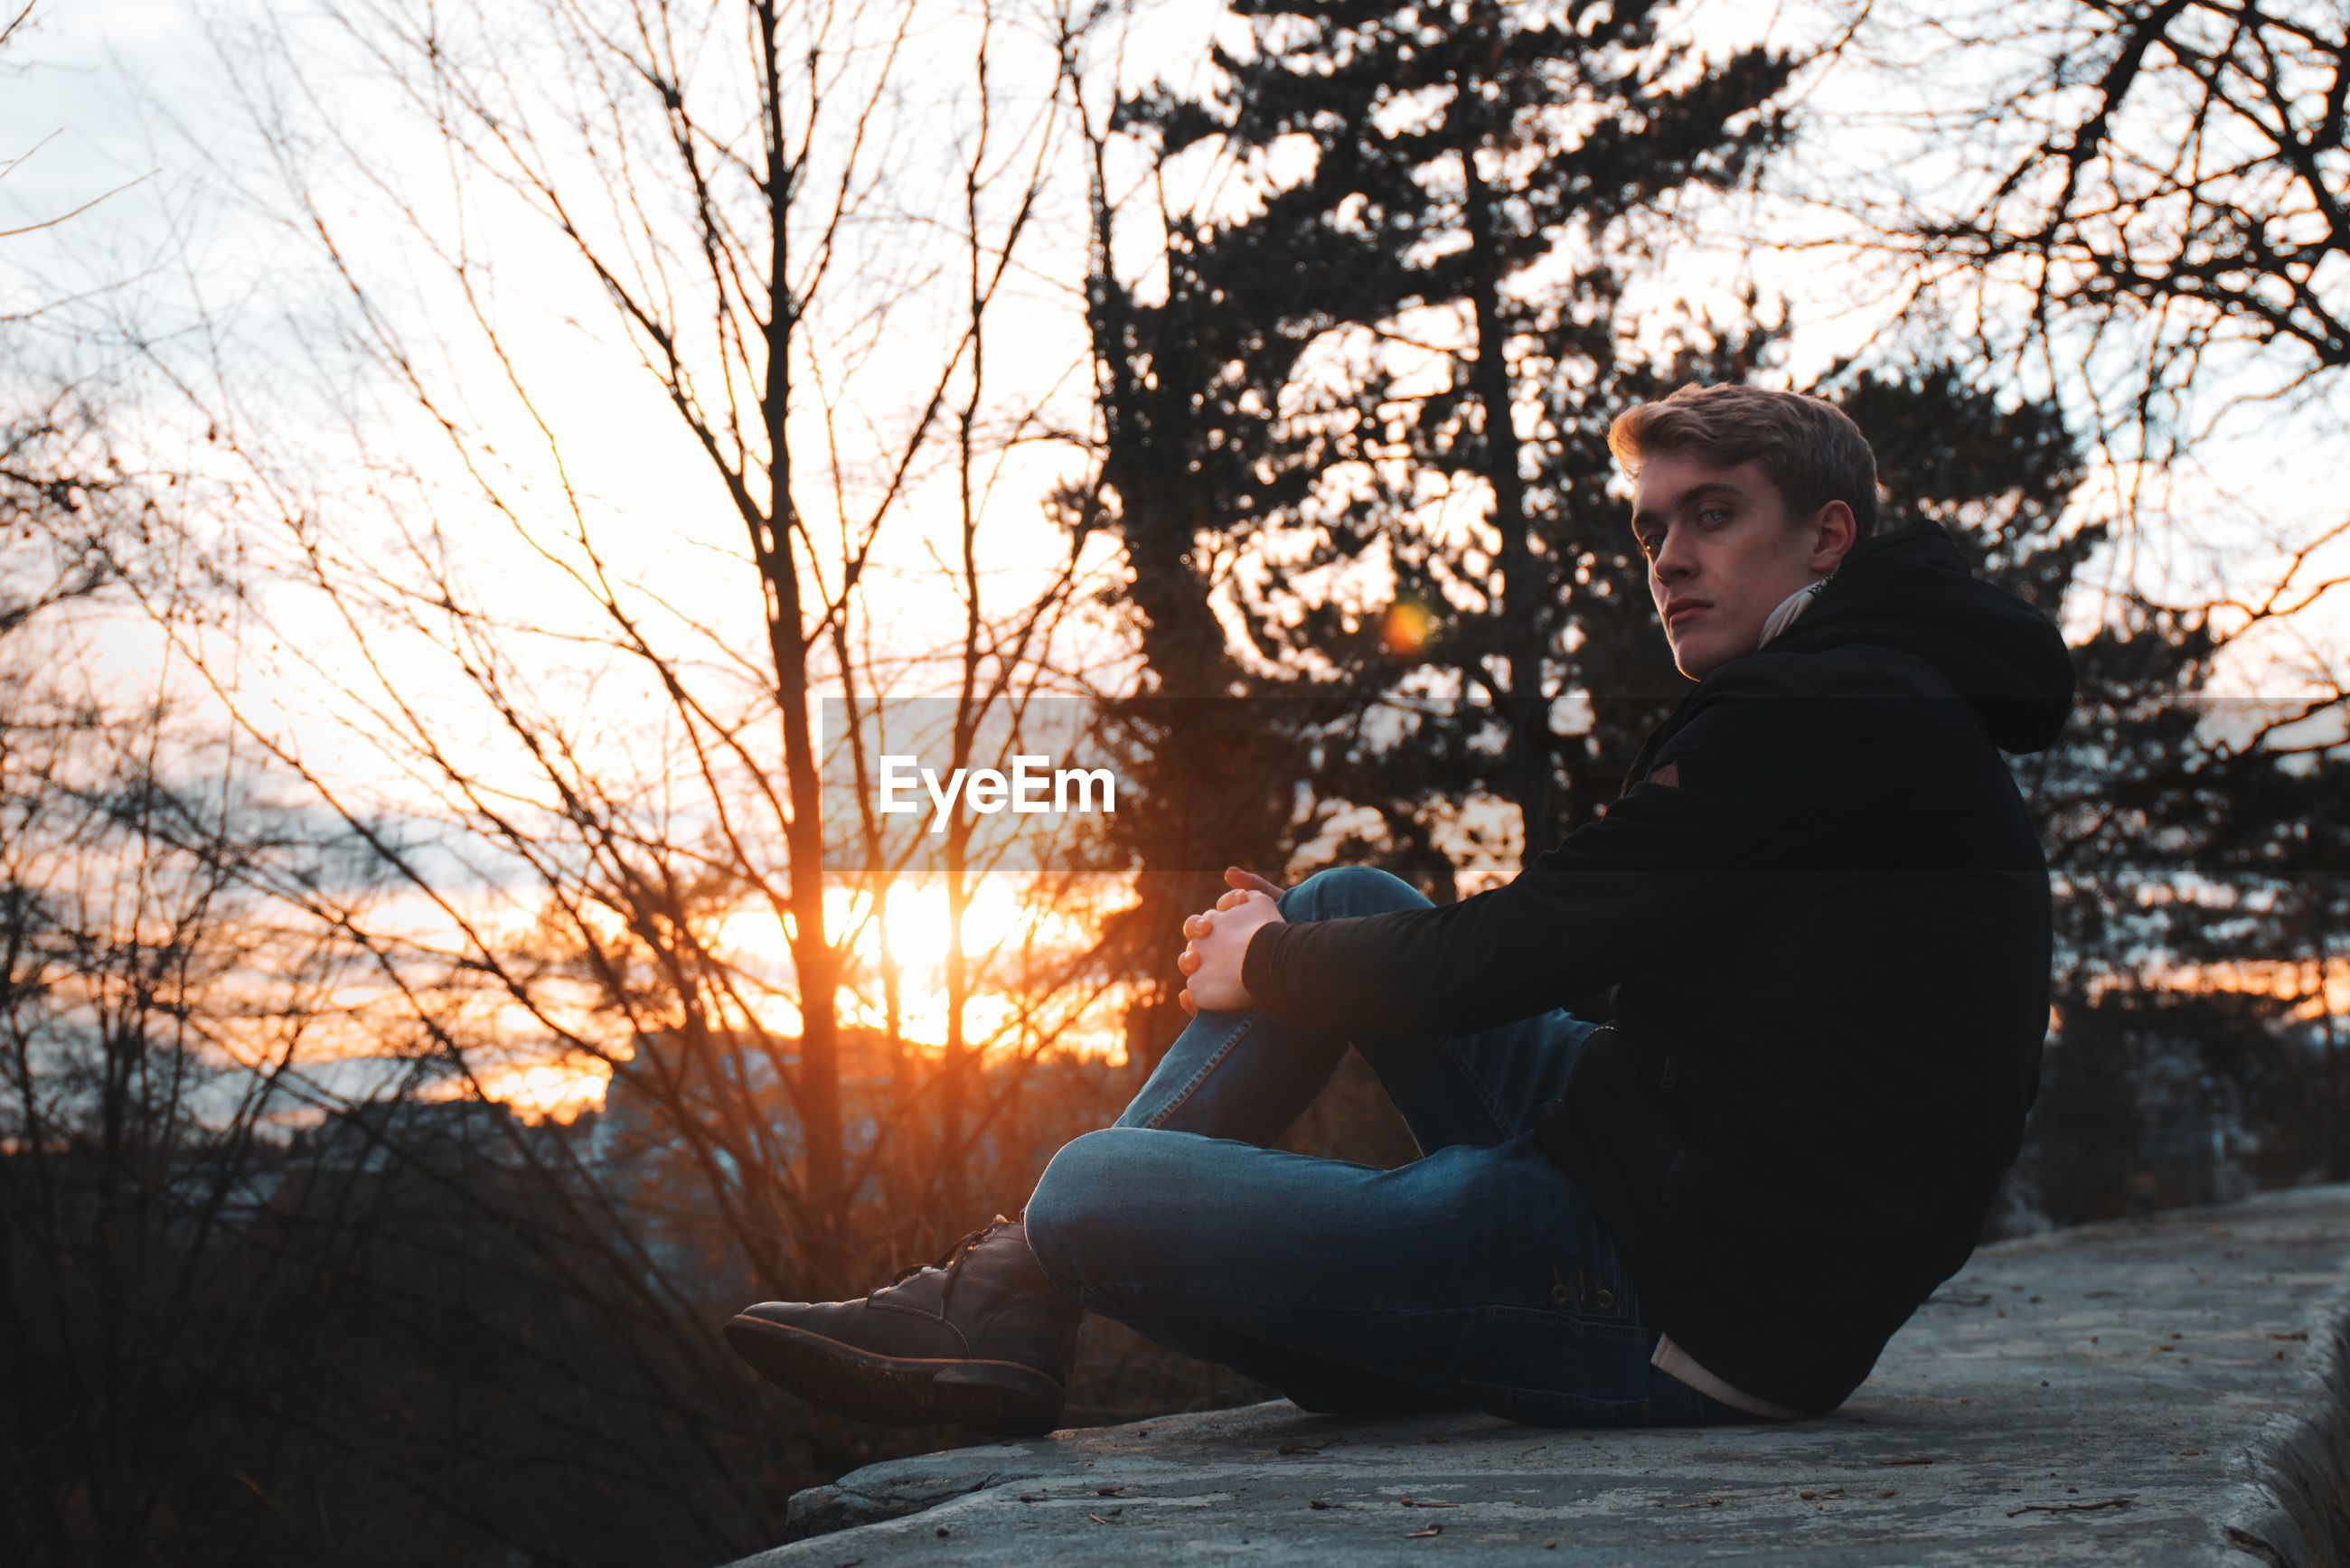 Portrait of man sitting on retaining wall against trees during sunset